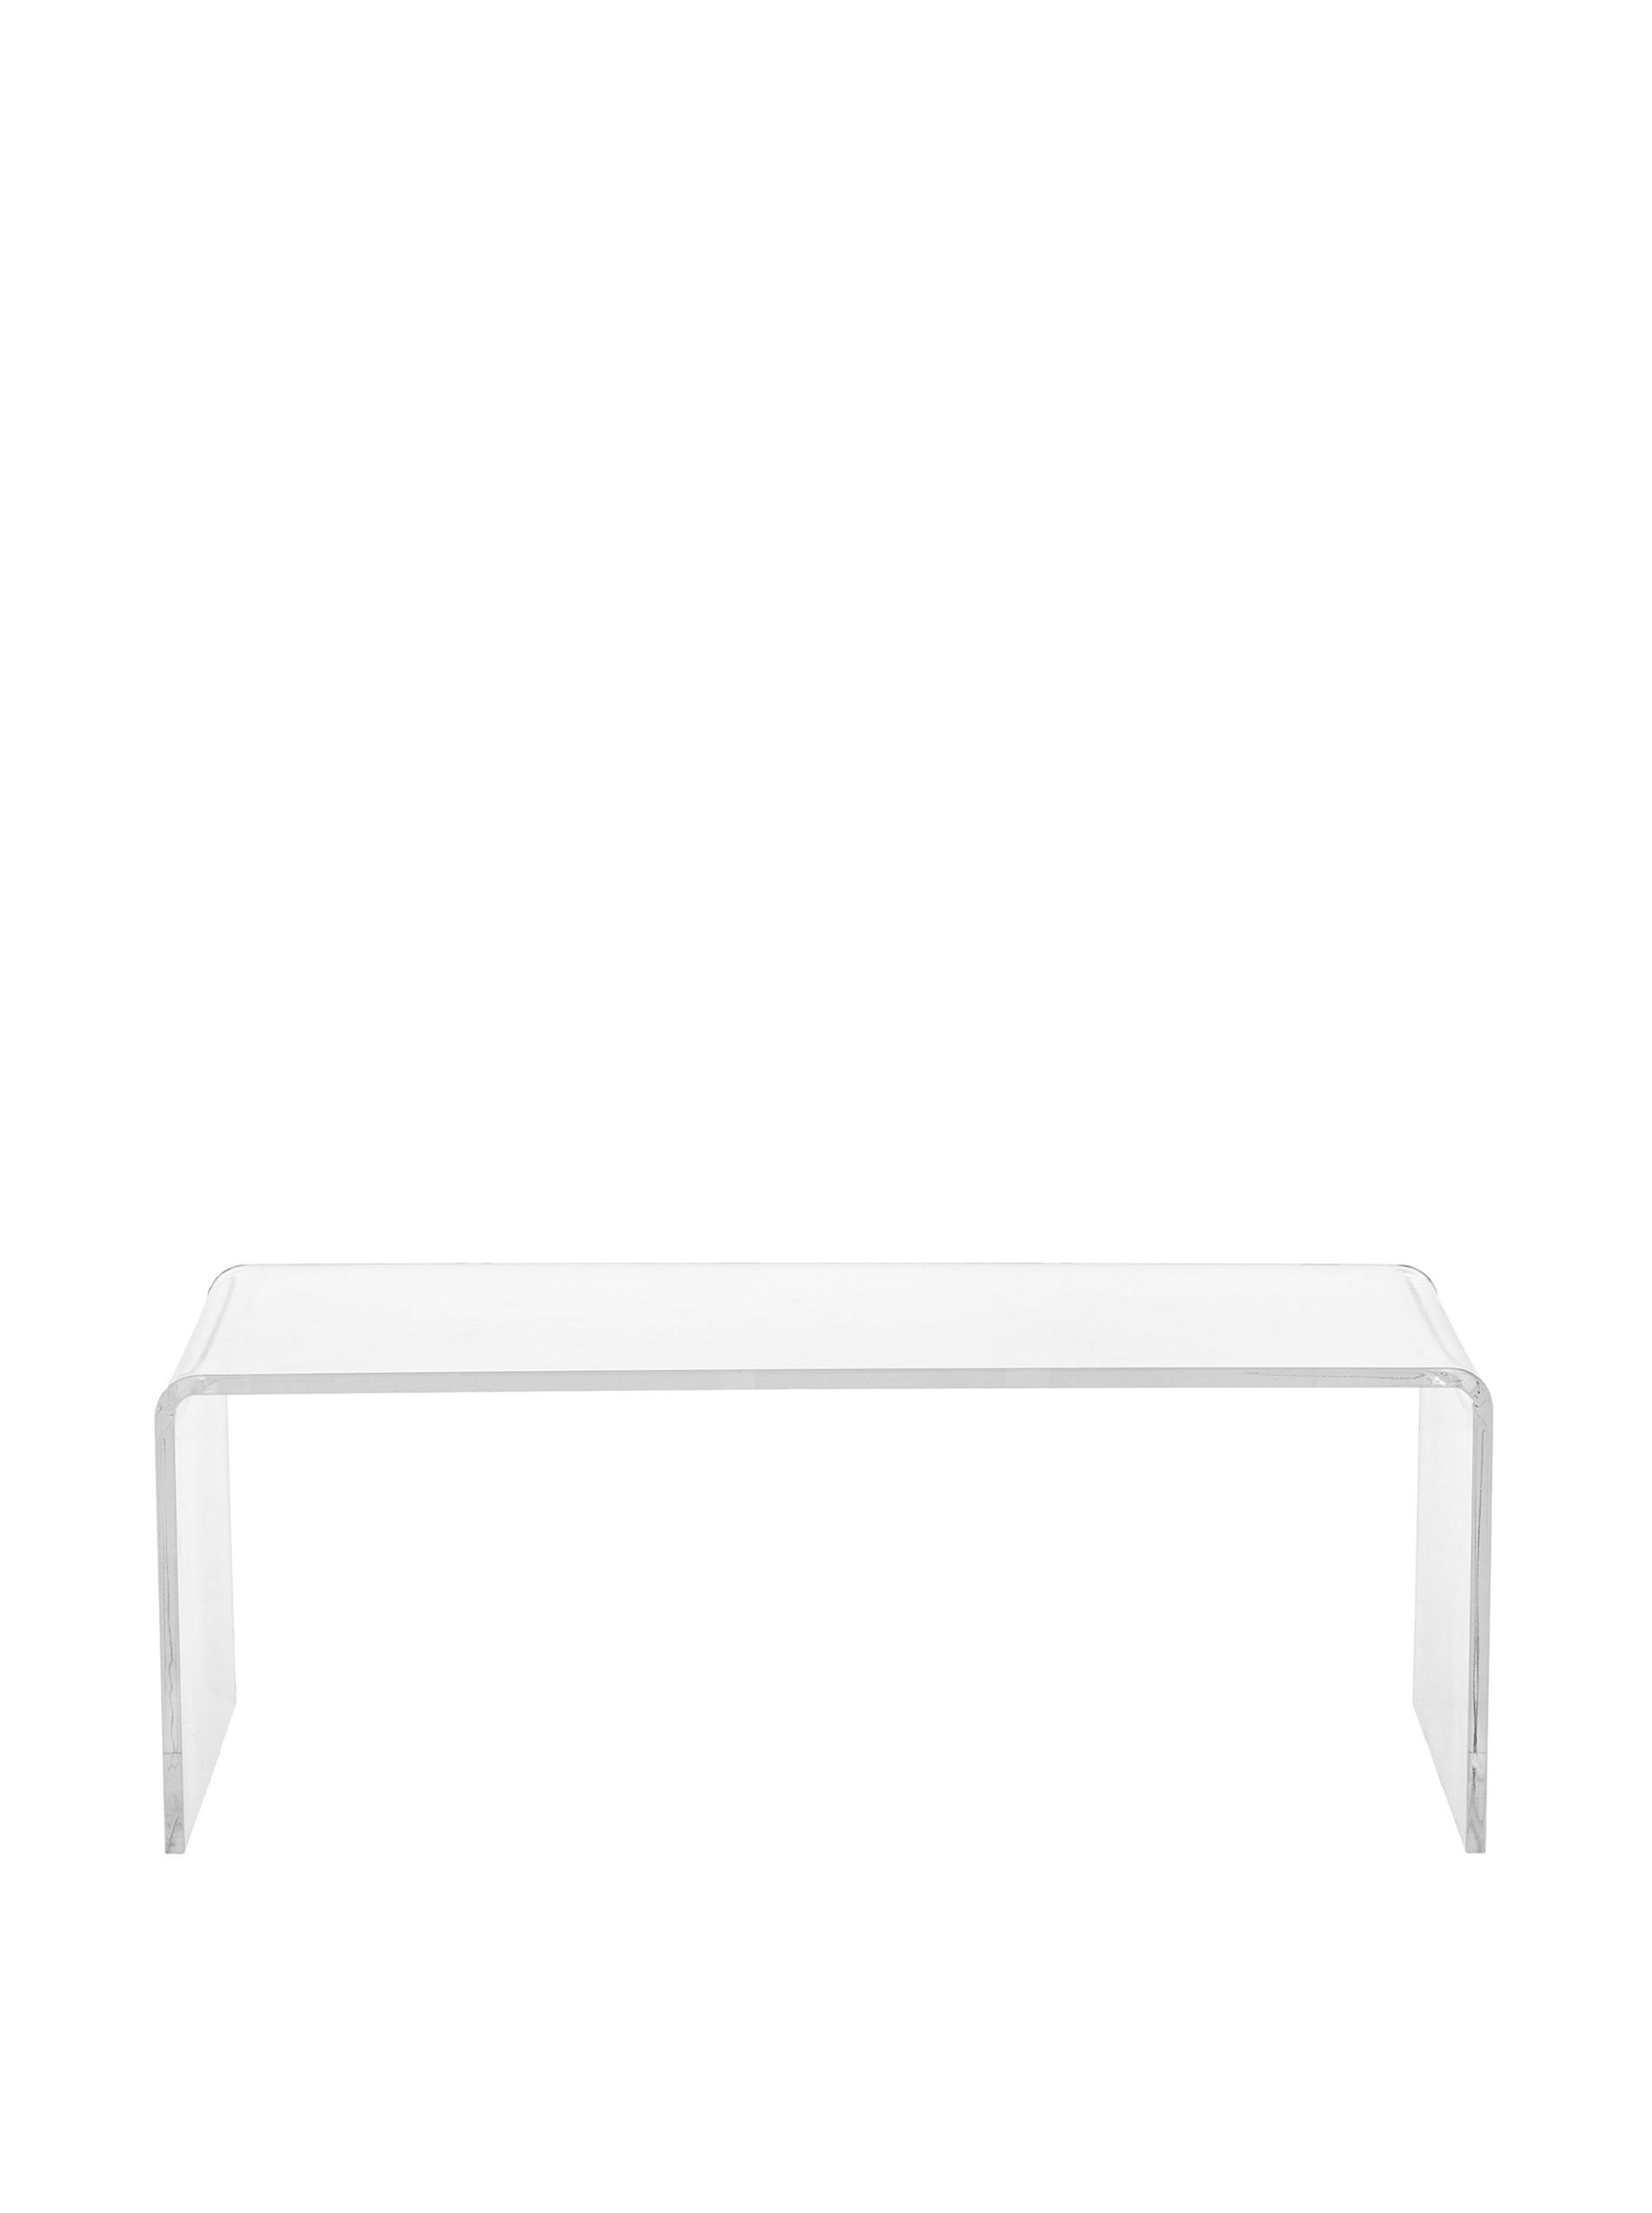 Fox Hill Trading Pure Décor Acrylic Coffee Table, Clear at MYHABIT